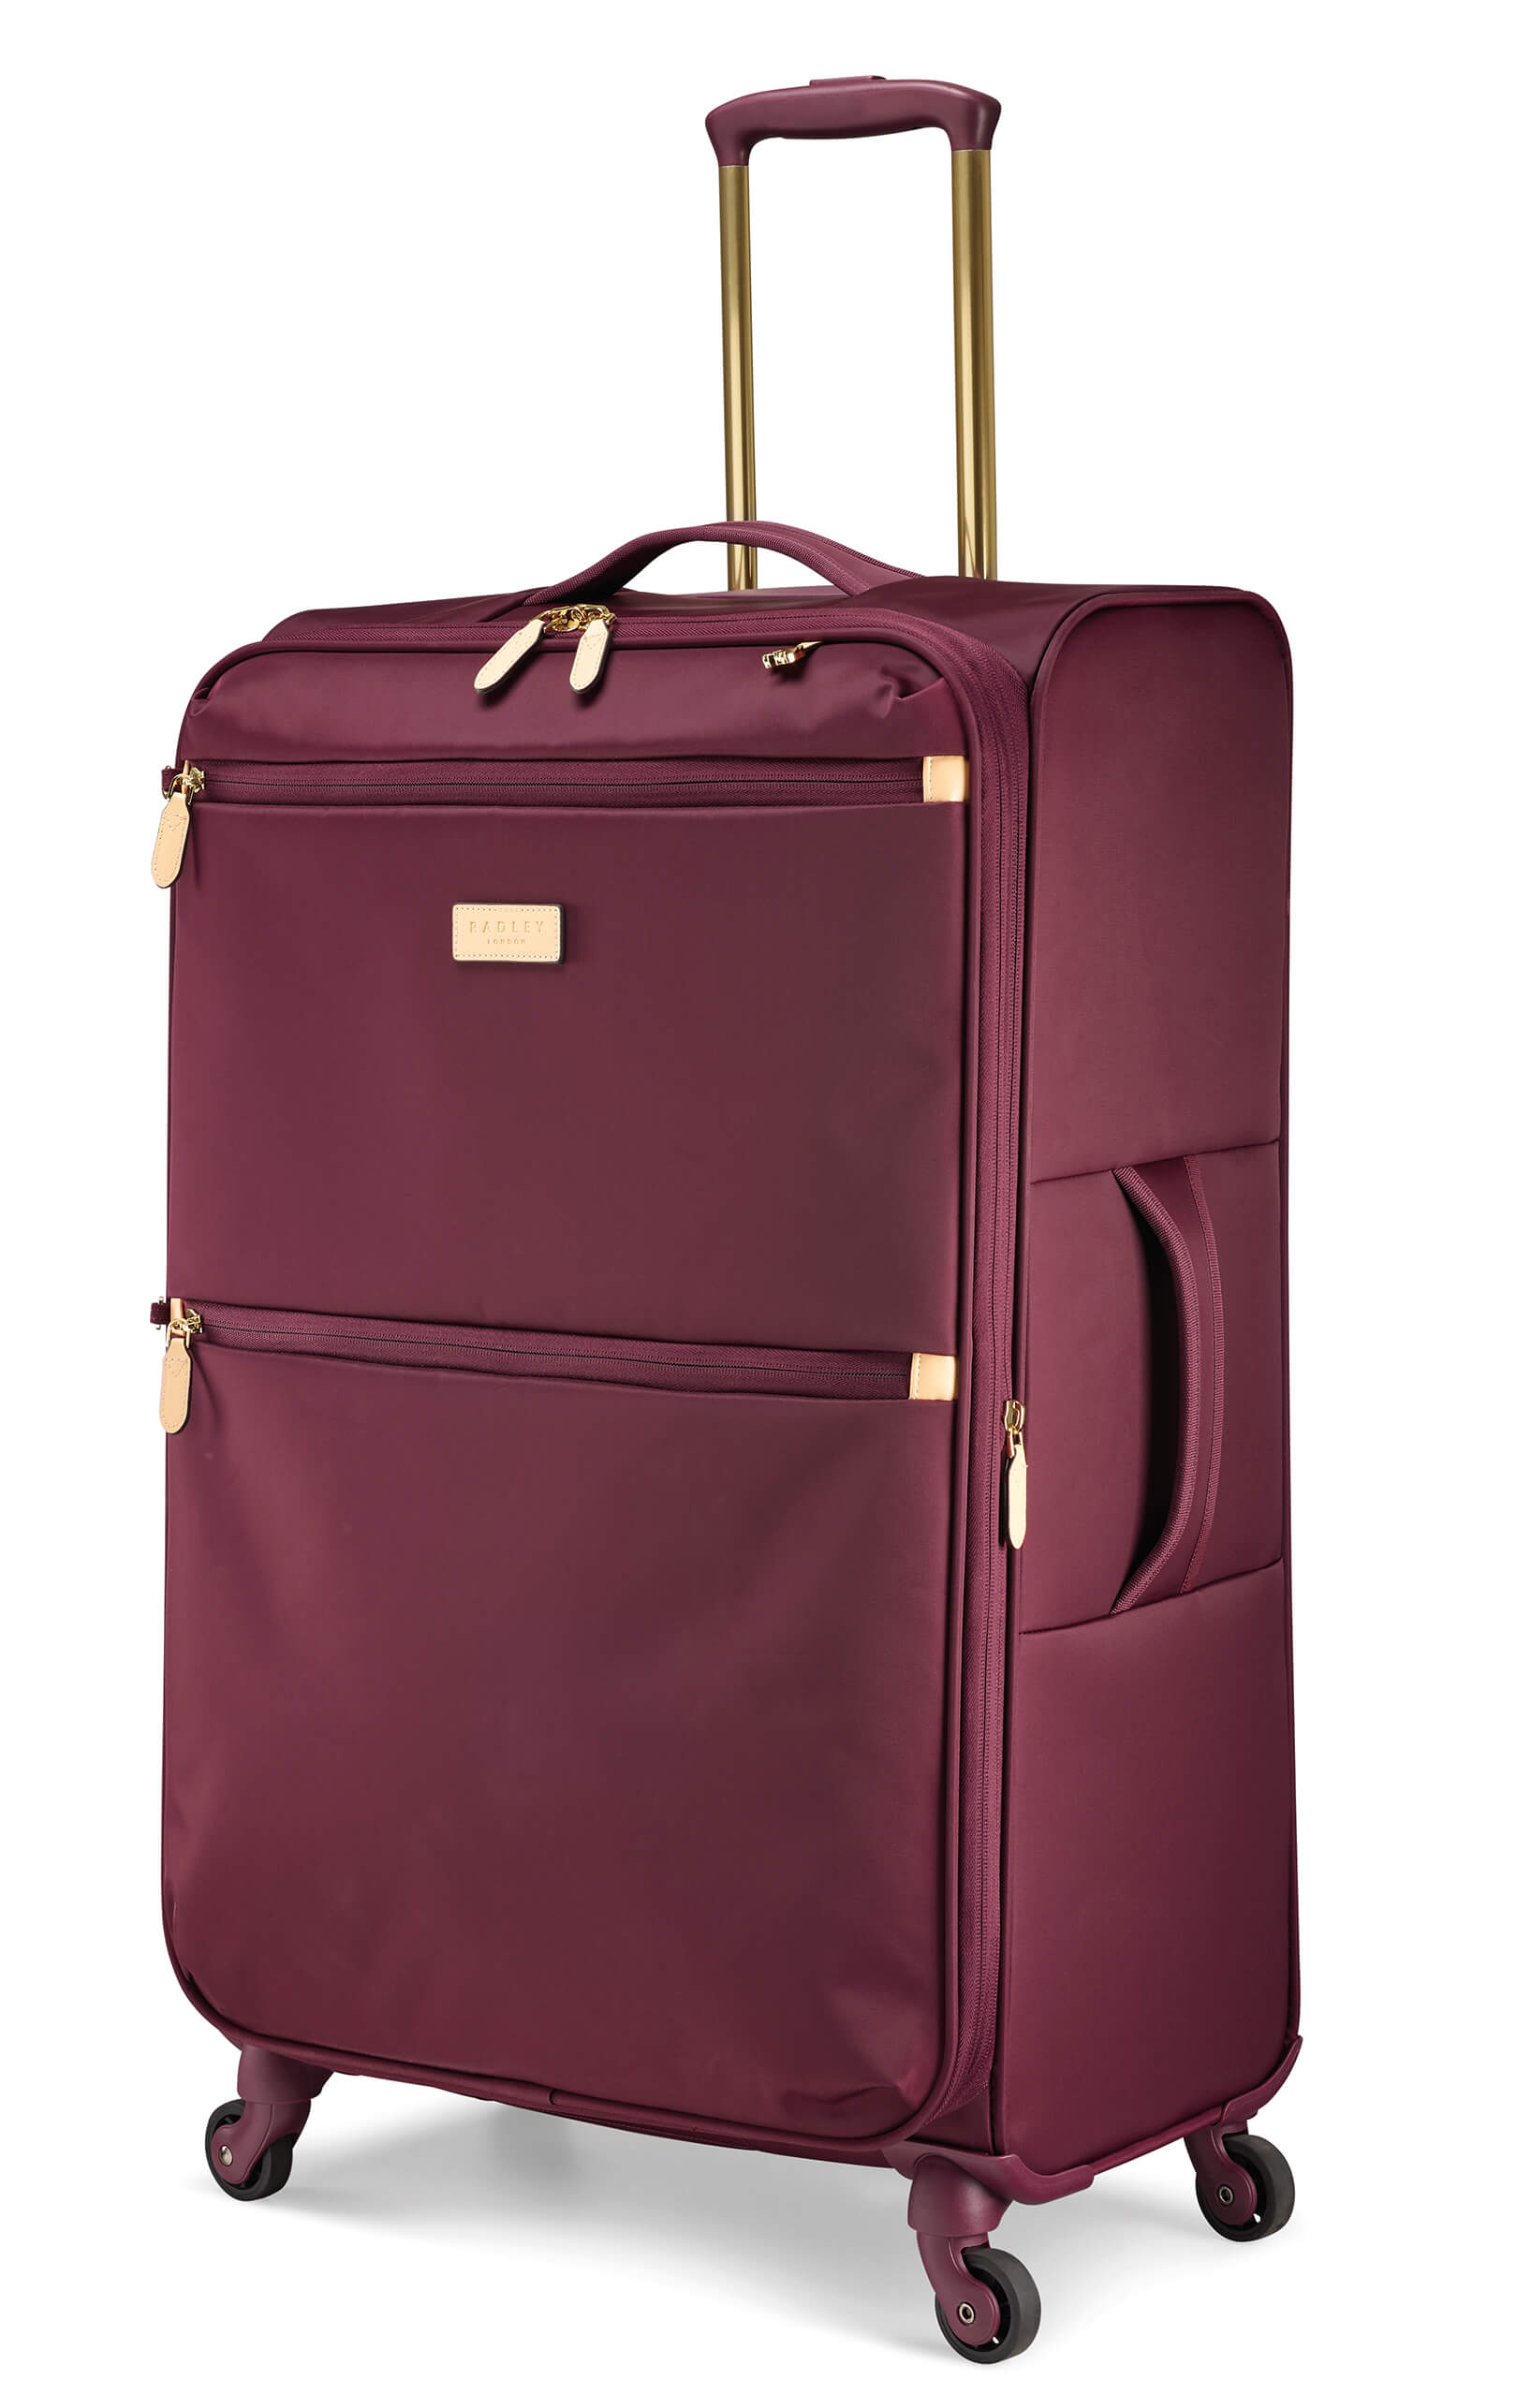 Radley Travel Essentials 79cm Expandable 4-Wheel Suitcase